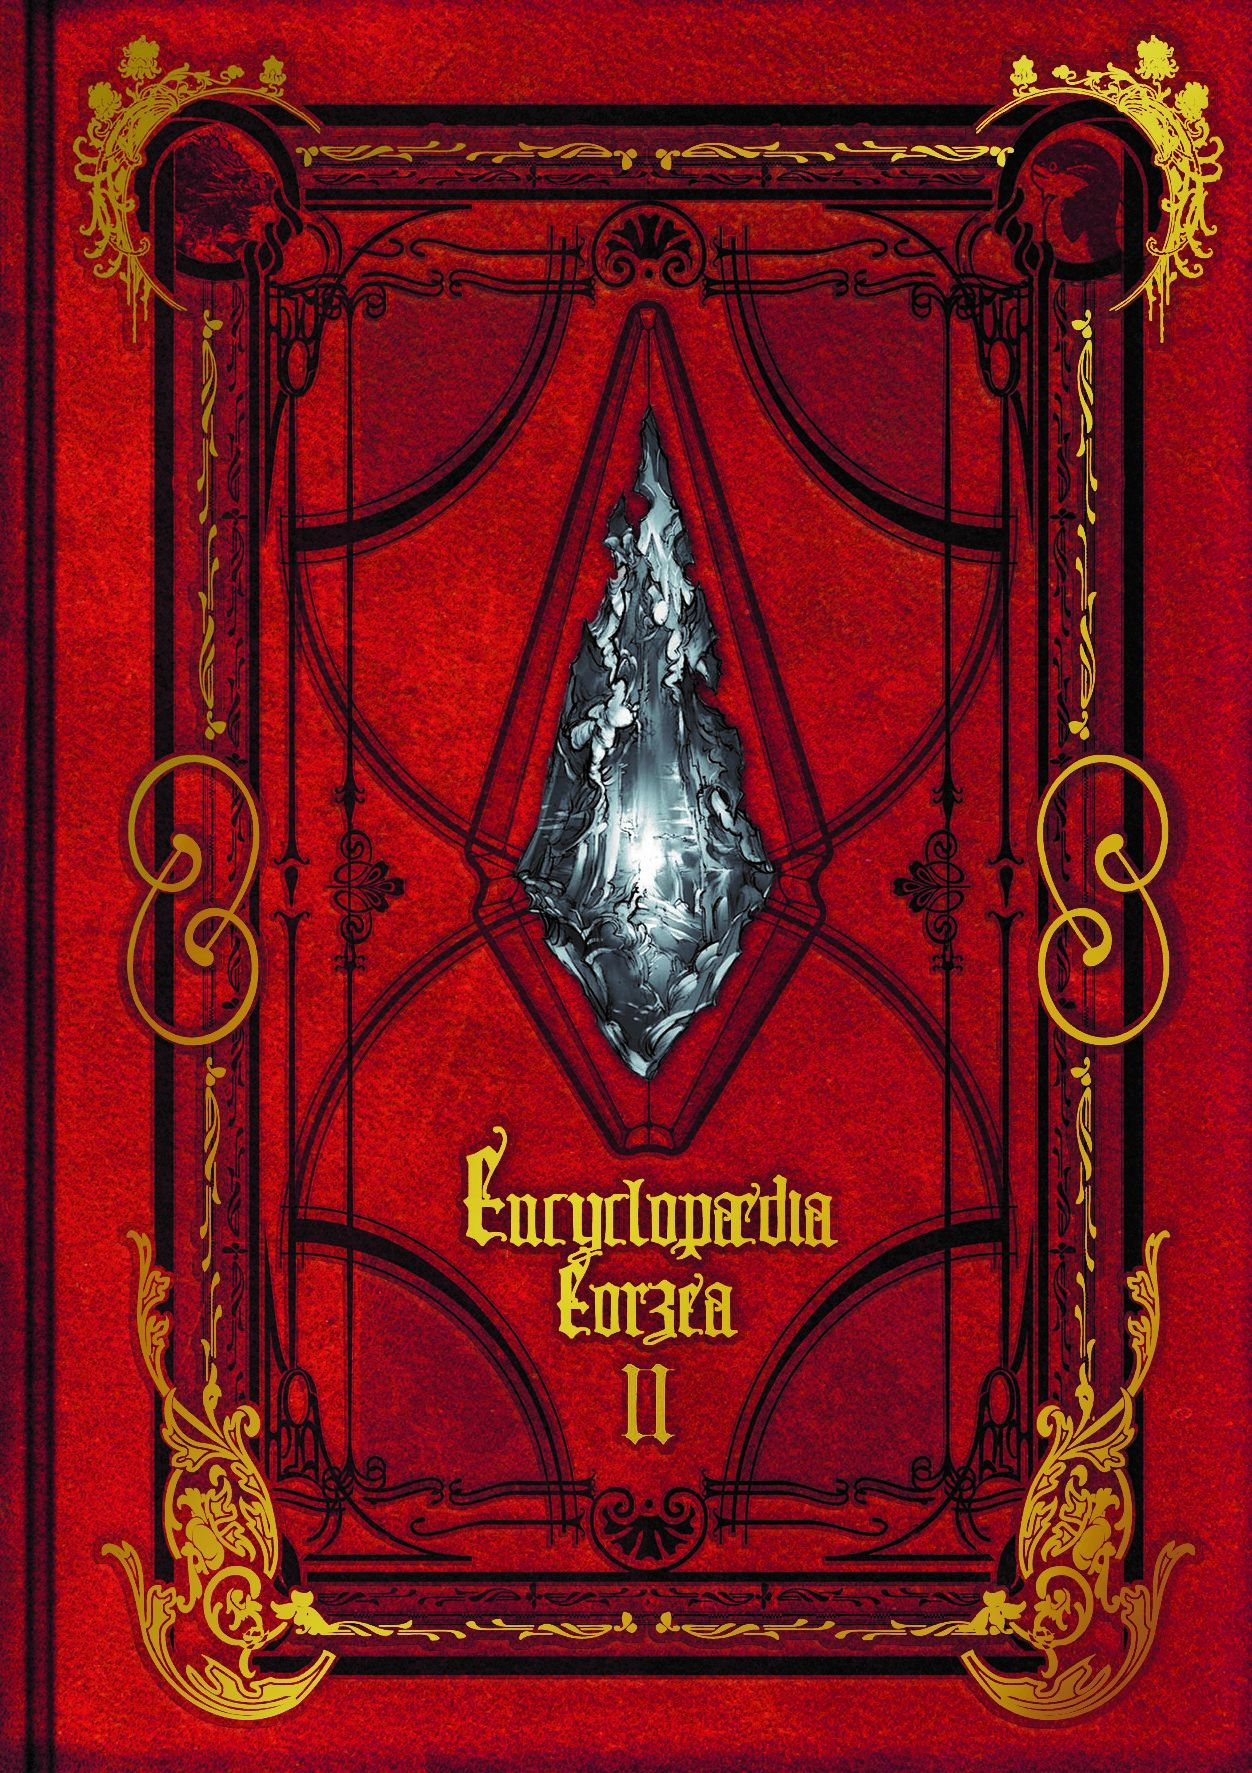 ENCYCLOPAEDIA EORZEA: THE WORLD OF FINAL FANTASY XIV [VOLUME